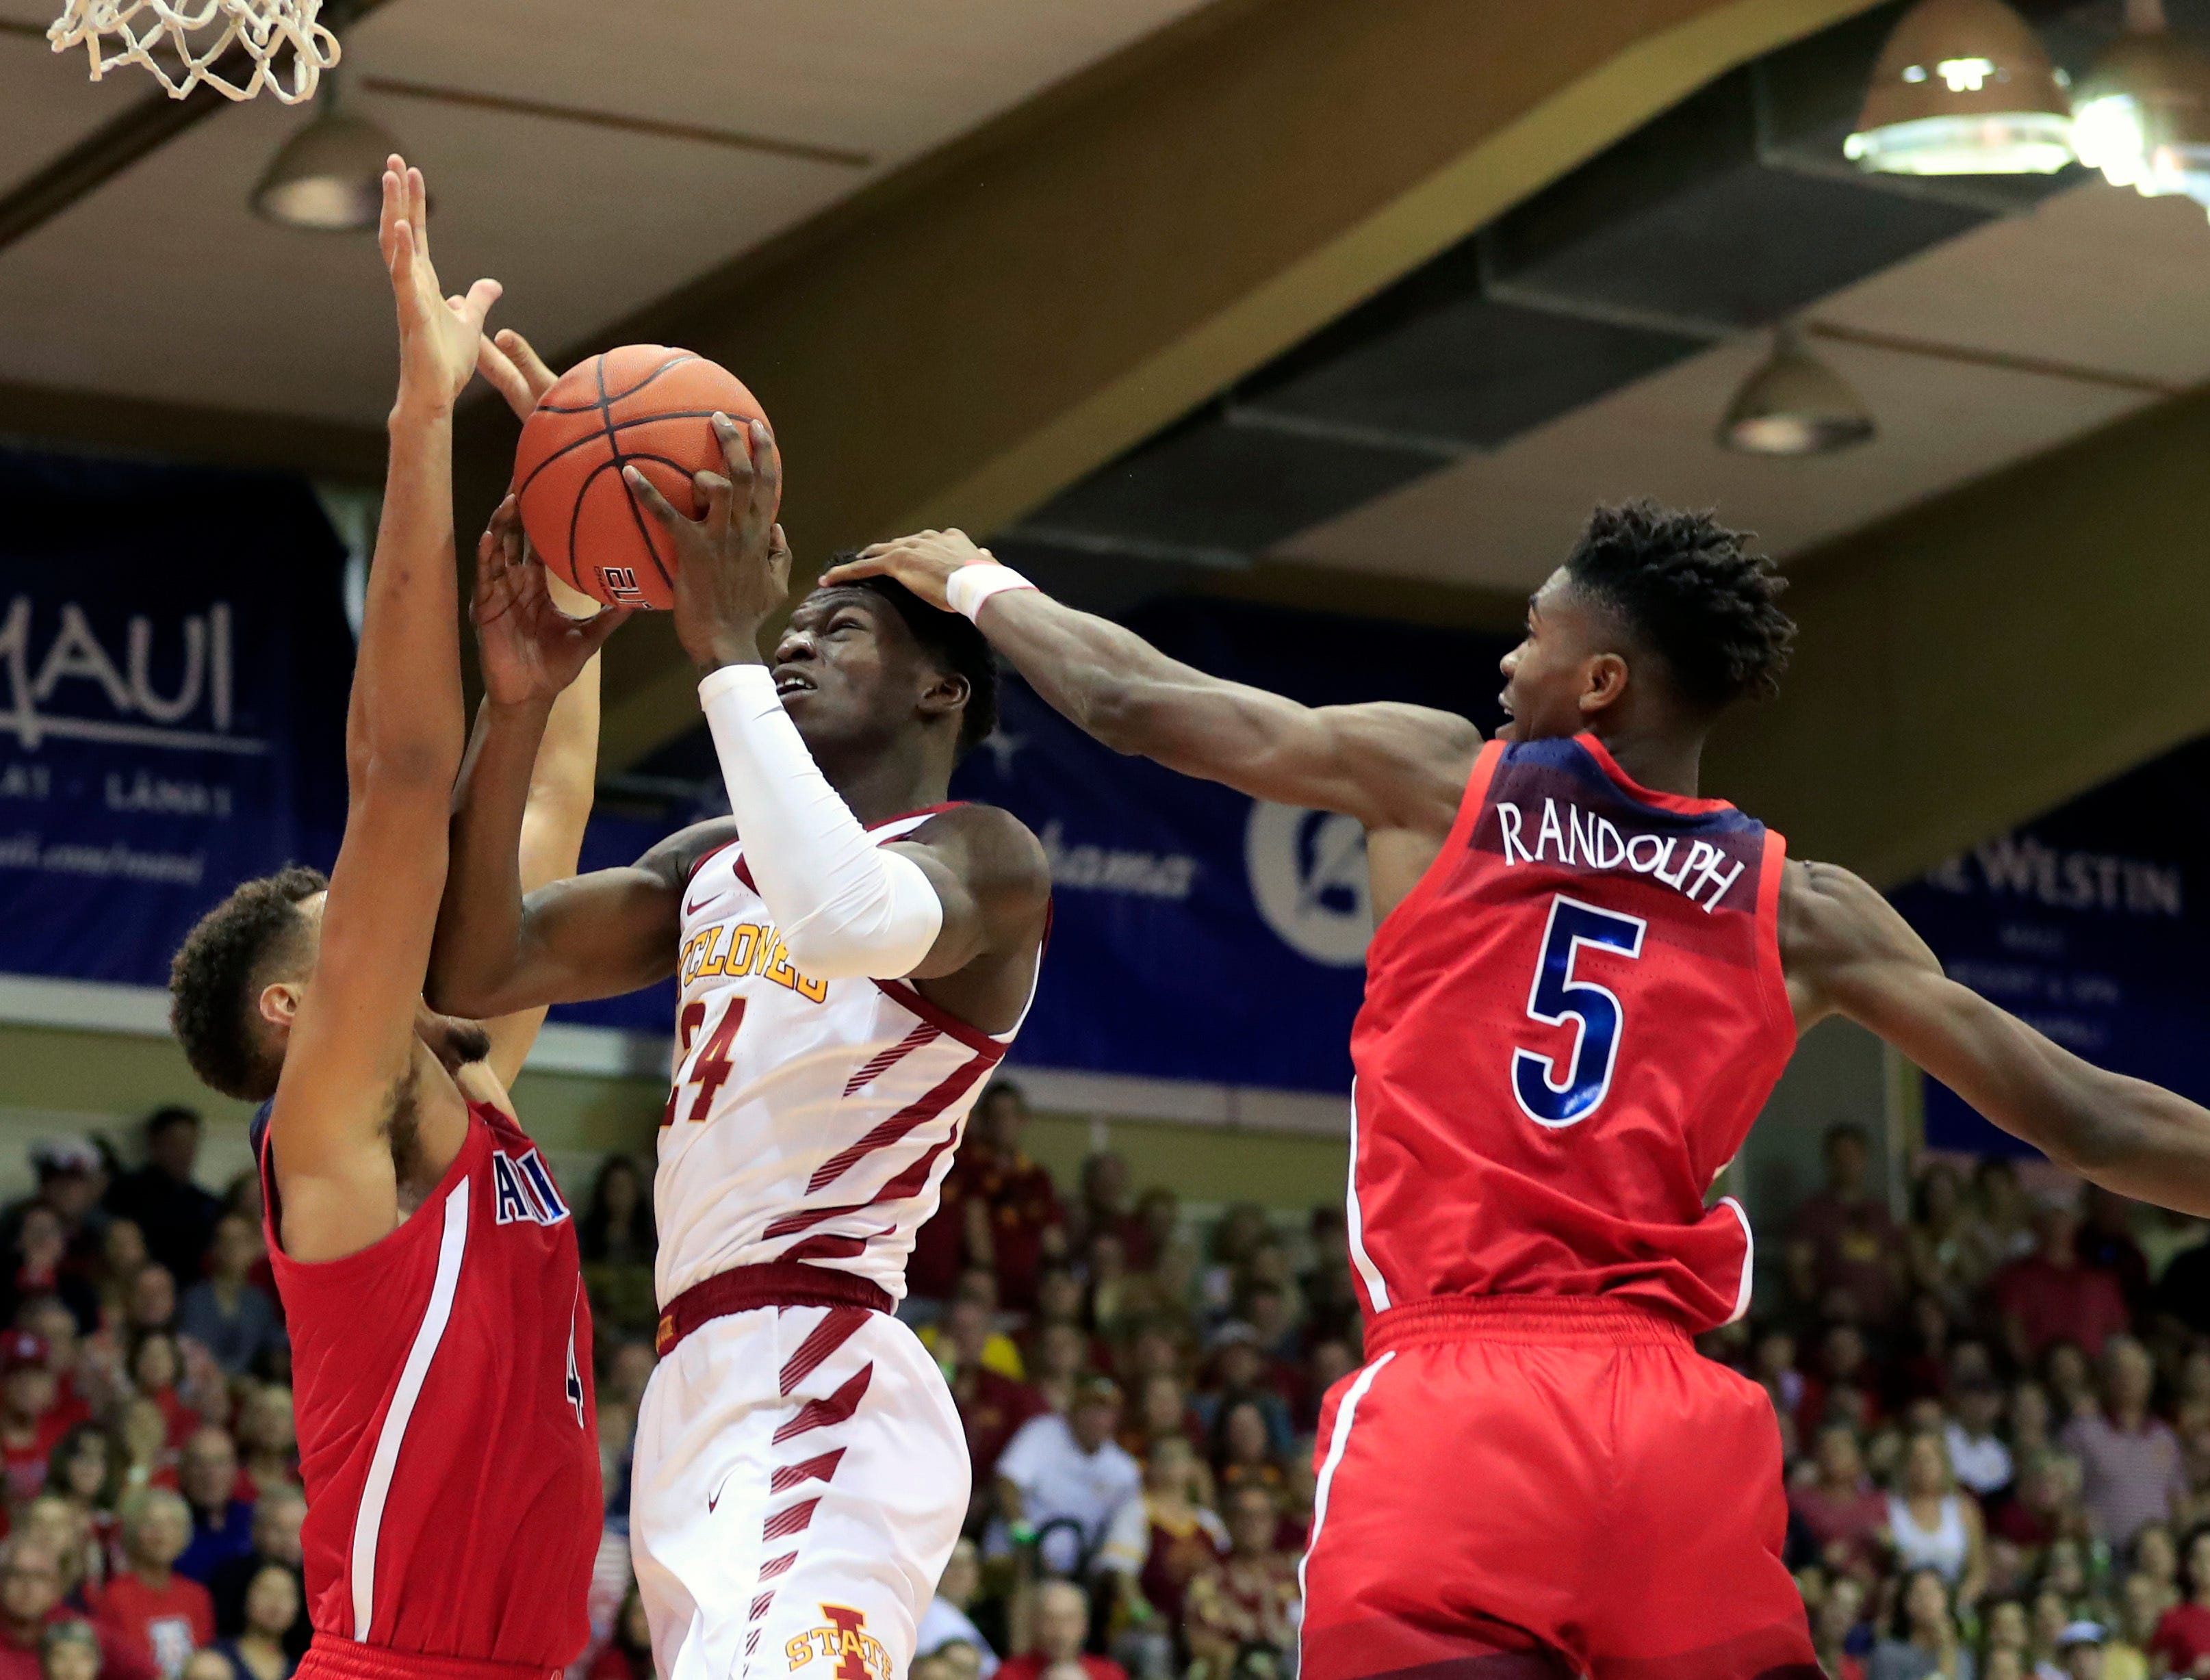 Iowa State guard Terrence Lewis (24) goes between Arizona center Chase Jeter (4) and guard Brandon Randolph (5) during the first half of an NCAA college basketball game at the Maui Invitational, Monday, Nov. 19, 2018, in Lahaina, Hawaii.